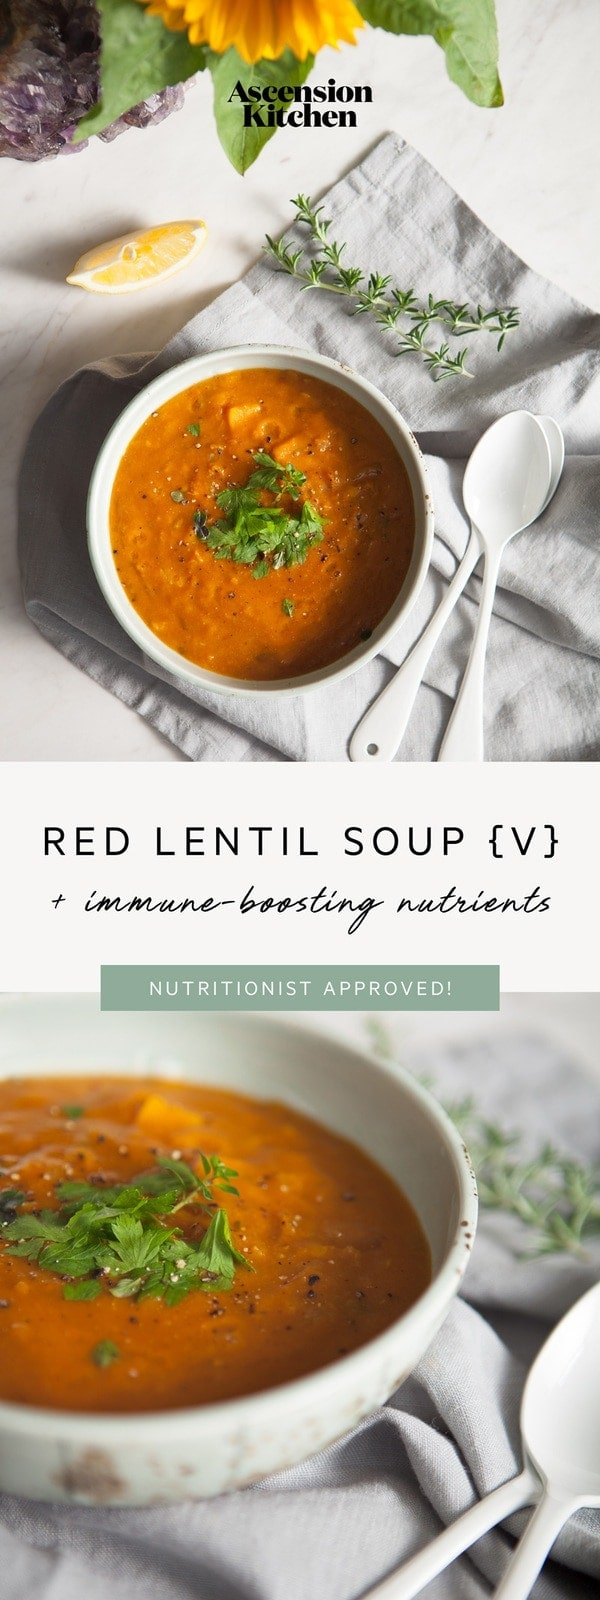 Nourishing Red Lentil Soup – entirely vegan with immune supportive nutrients. An easy mid-week meal. #vegansoup #weekdayrecipe #easymeal #soup #wintersoup #soupideas #immune #immunity #AscensionKitchen